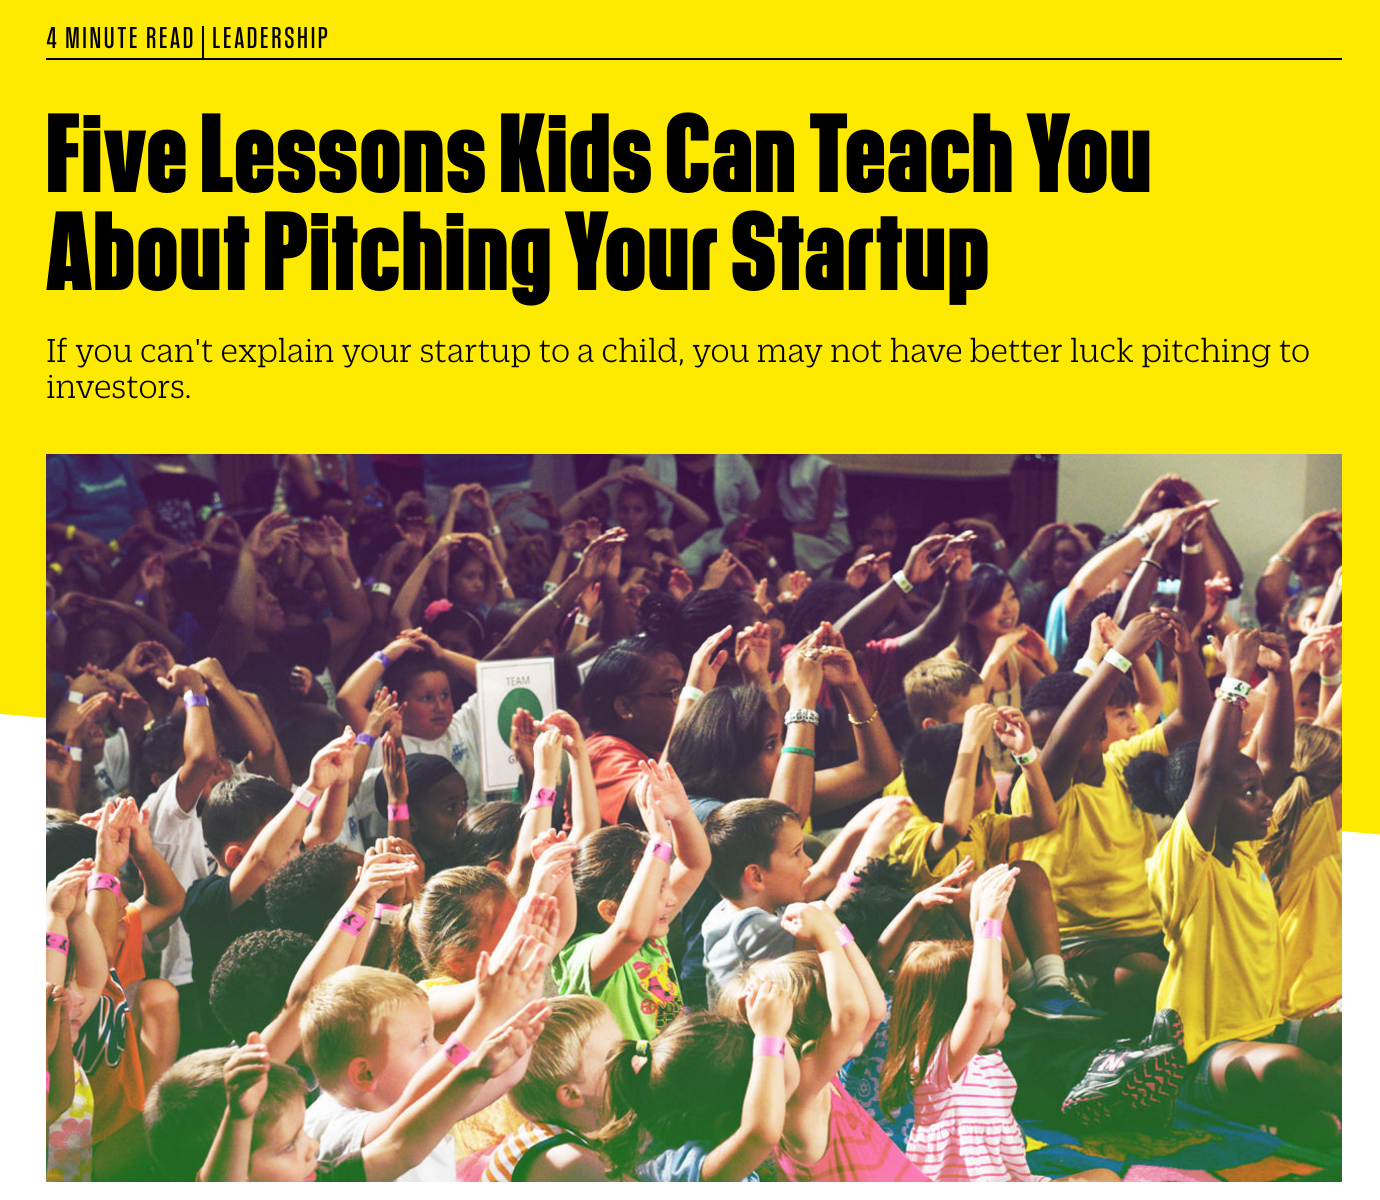 Five Lessons Kids Can Teach You About Pitching Your Startup